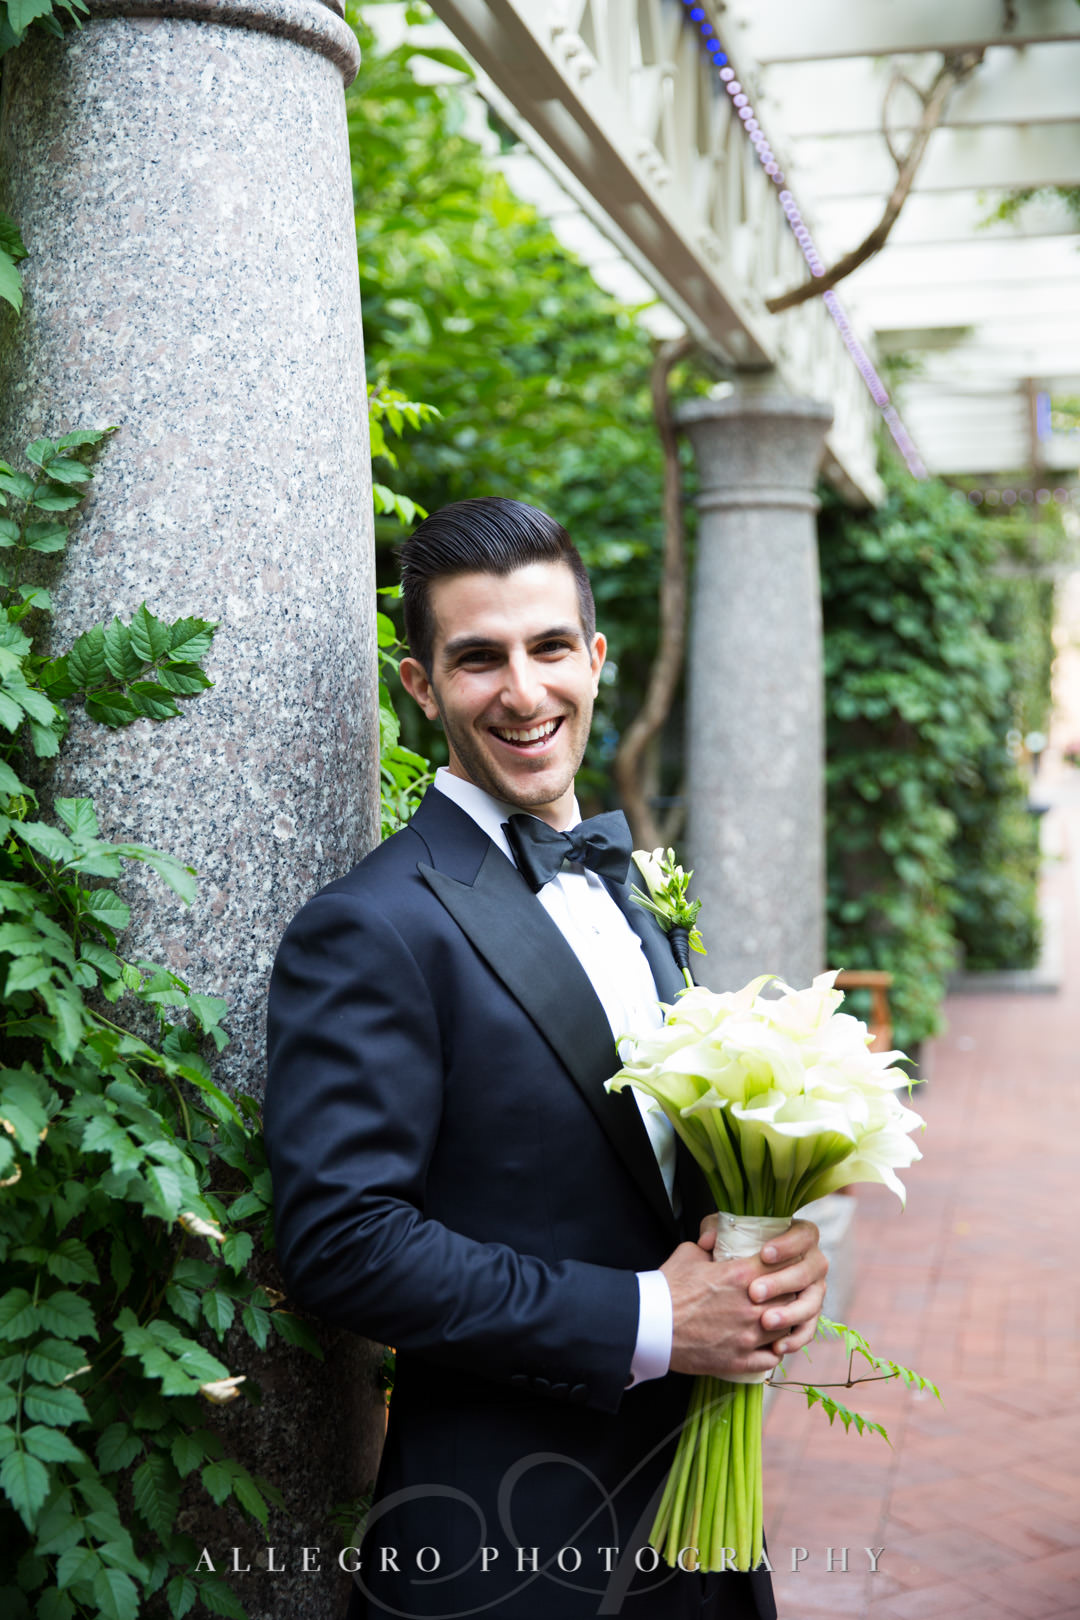 Groom poses with bouquet